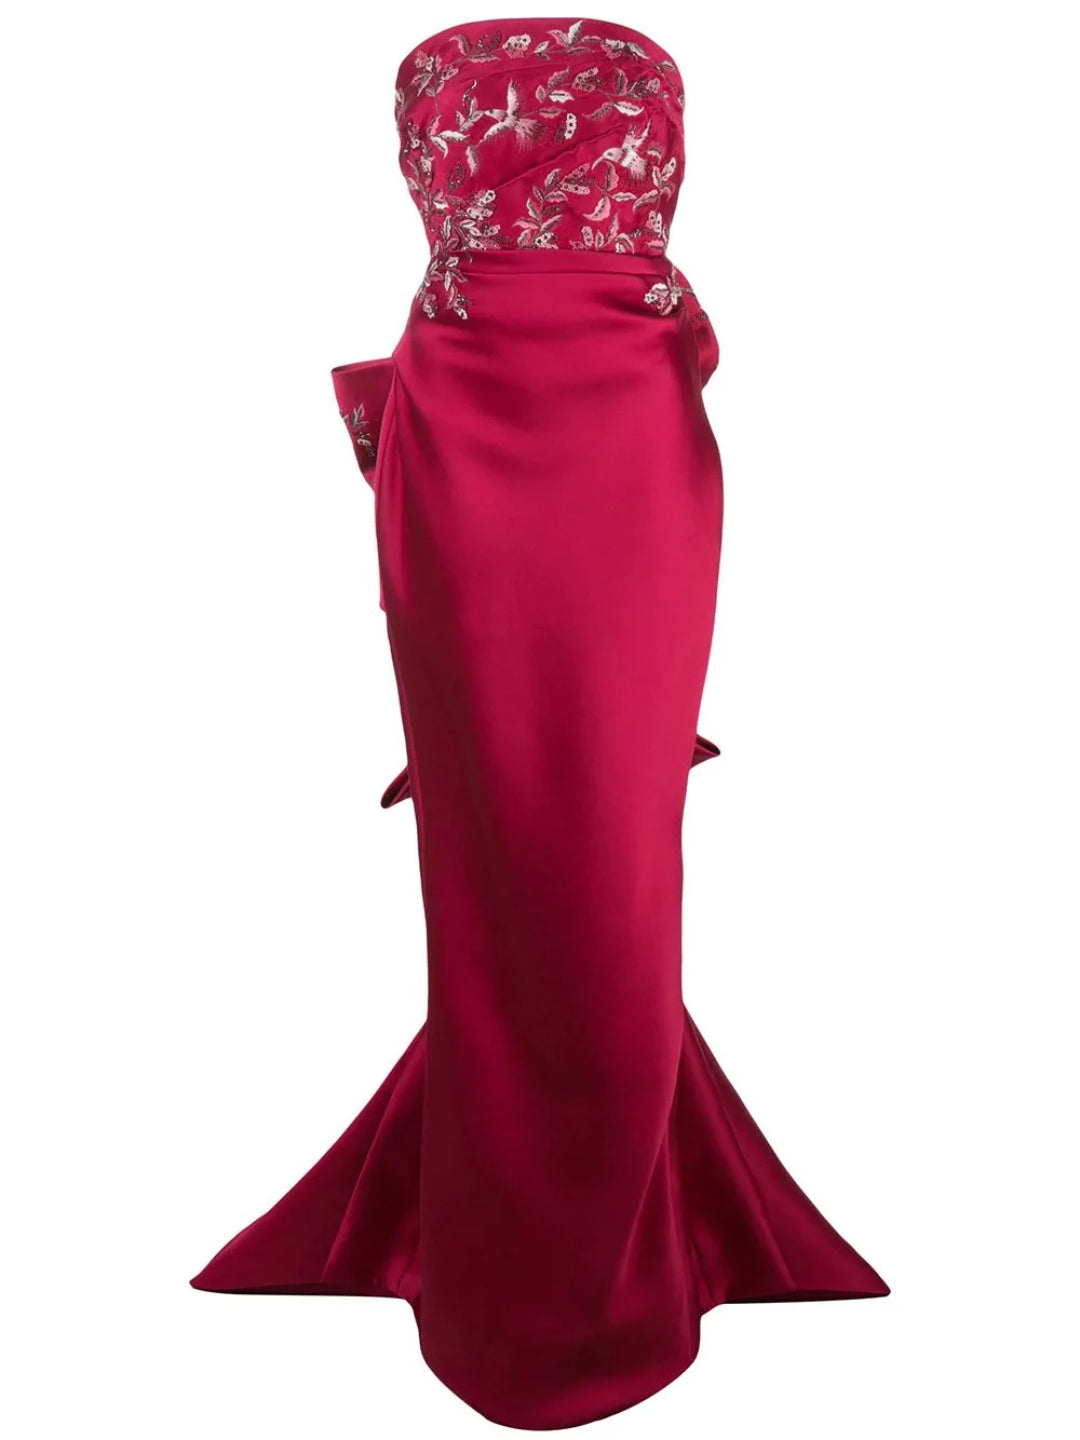 Strapless Embroidered Gown With Bow Detail